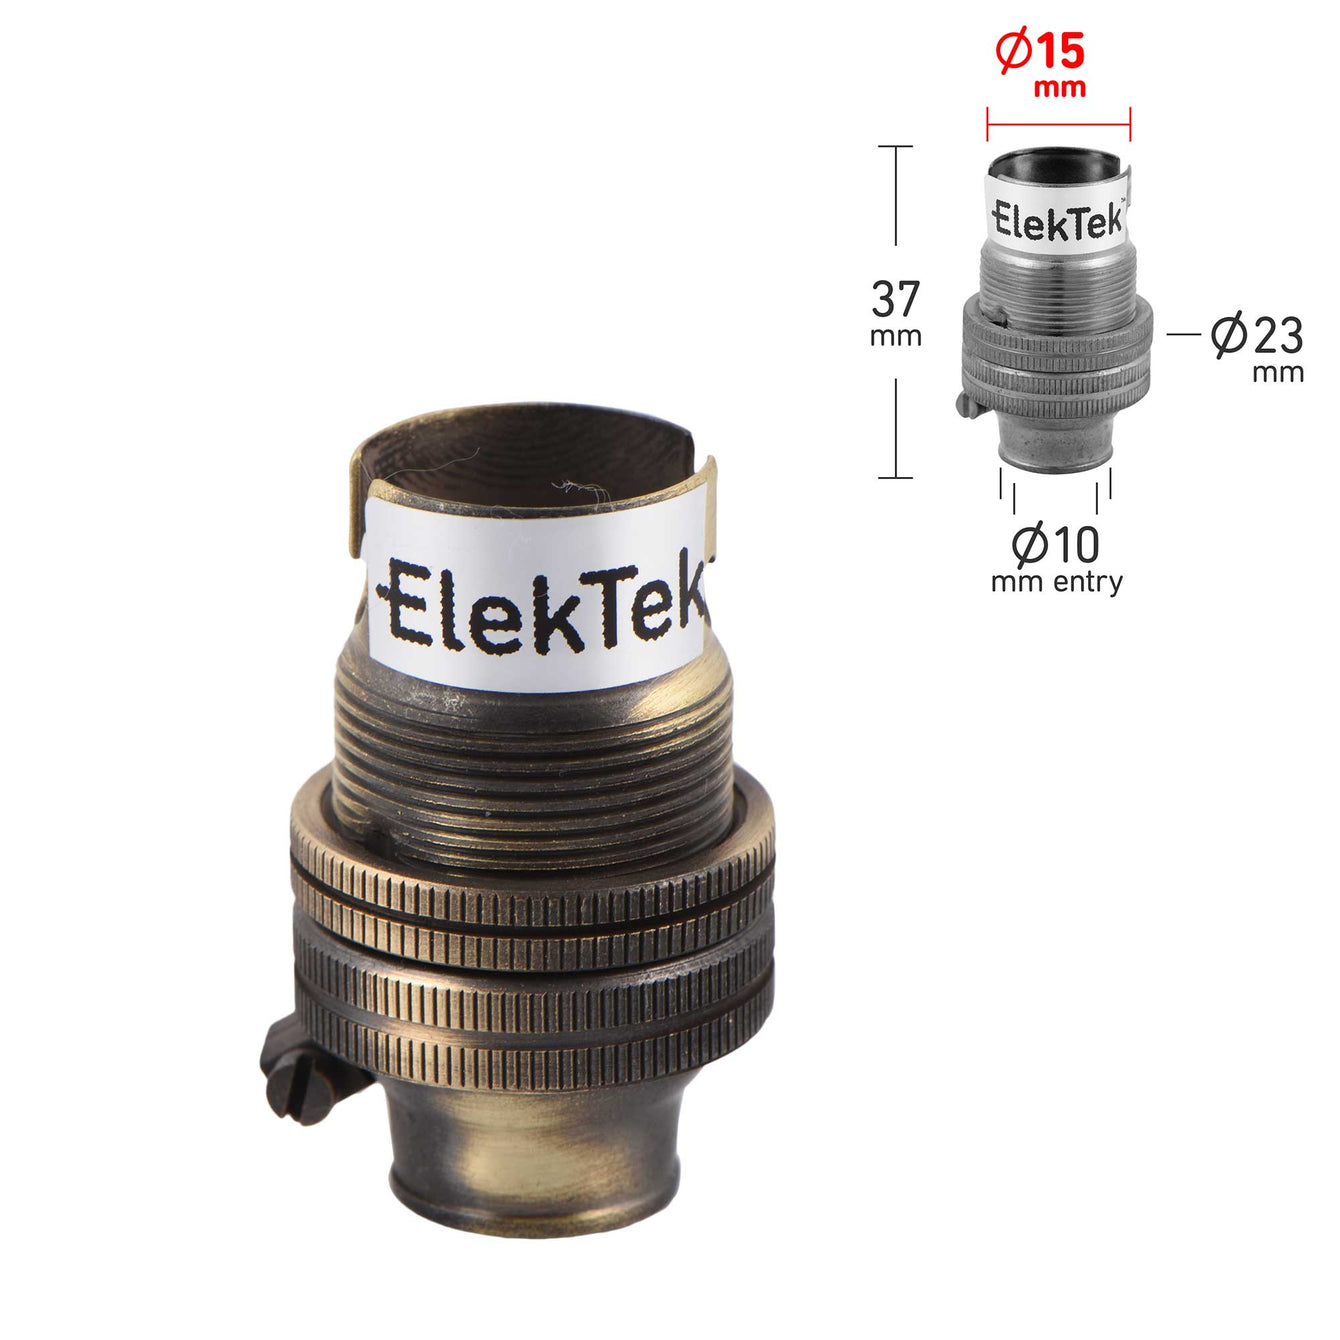 ElekTek Lamp Holder 10mm or Half Inch Entry Miniature Small Bayonet Cap SBC B15 With Shade Ring Solid Brass - Buy It Better Chrome / 10mm